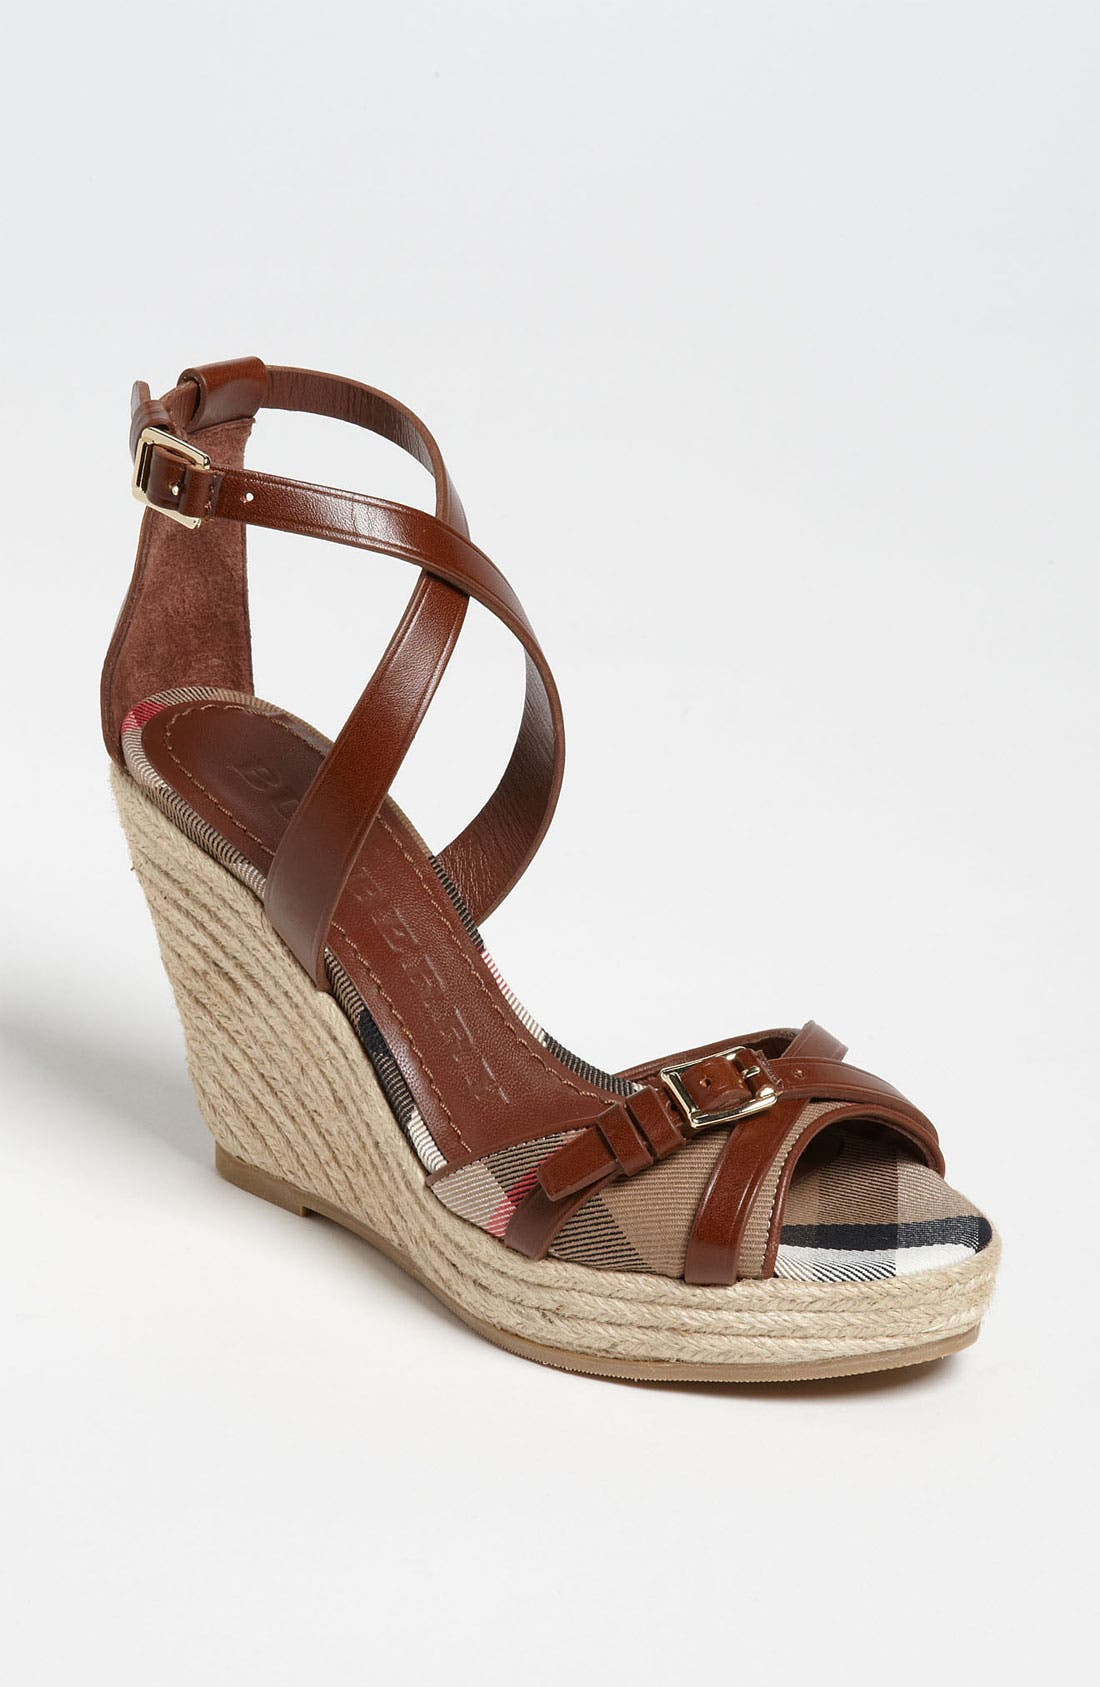 Alternate Image 1 Selected - Burberry 'Walden' Wedge Sandal